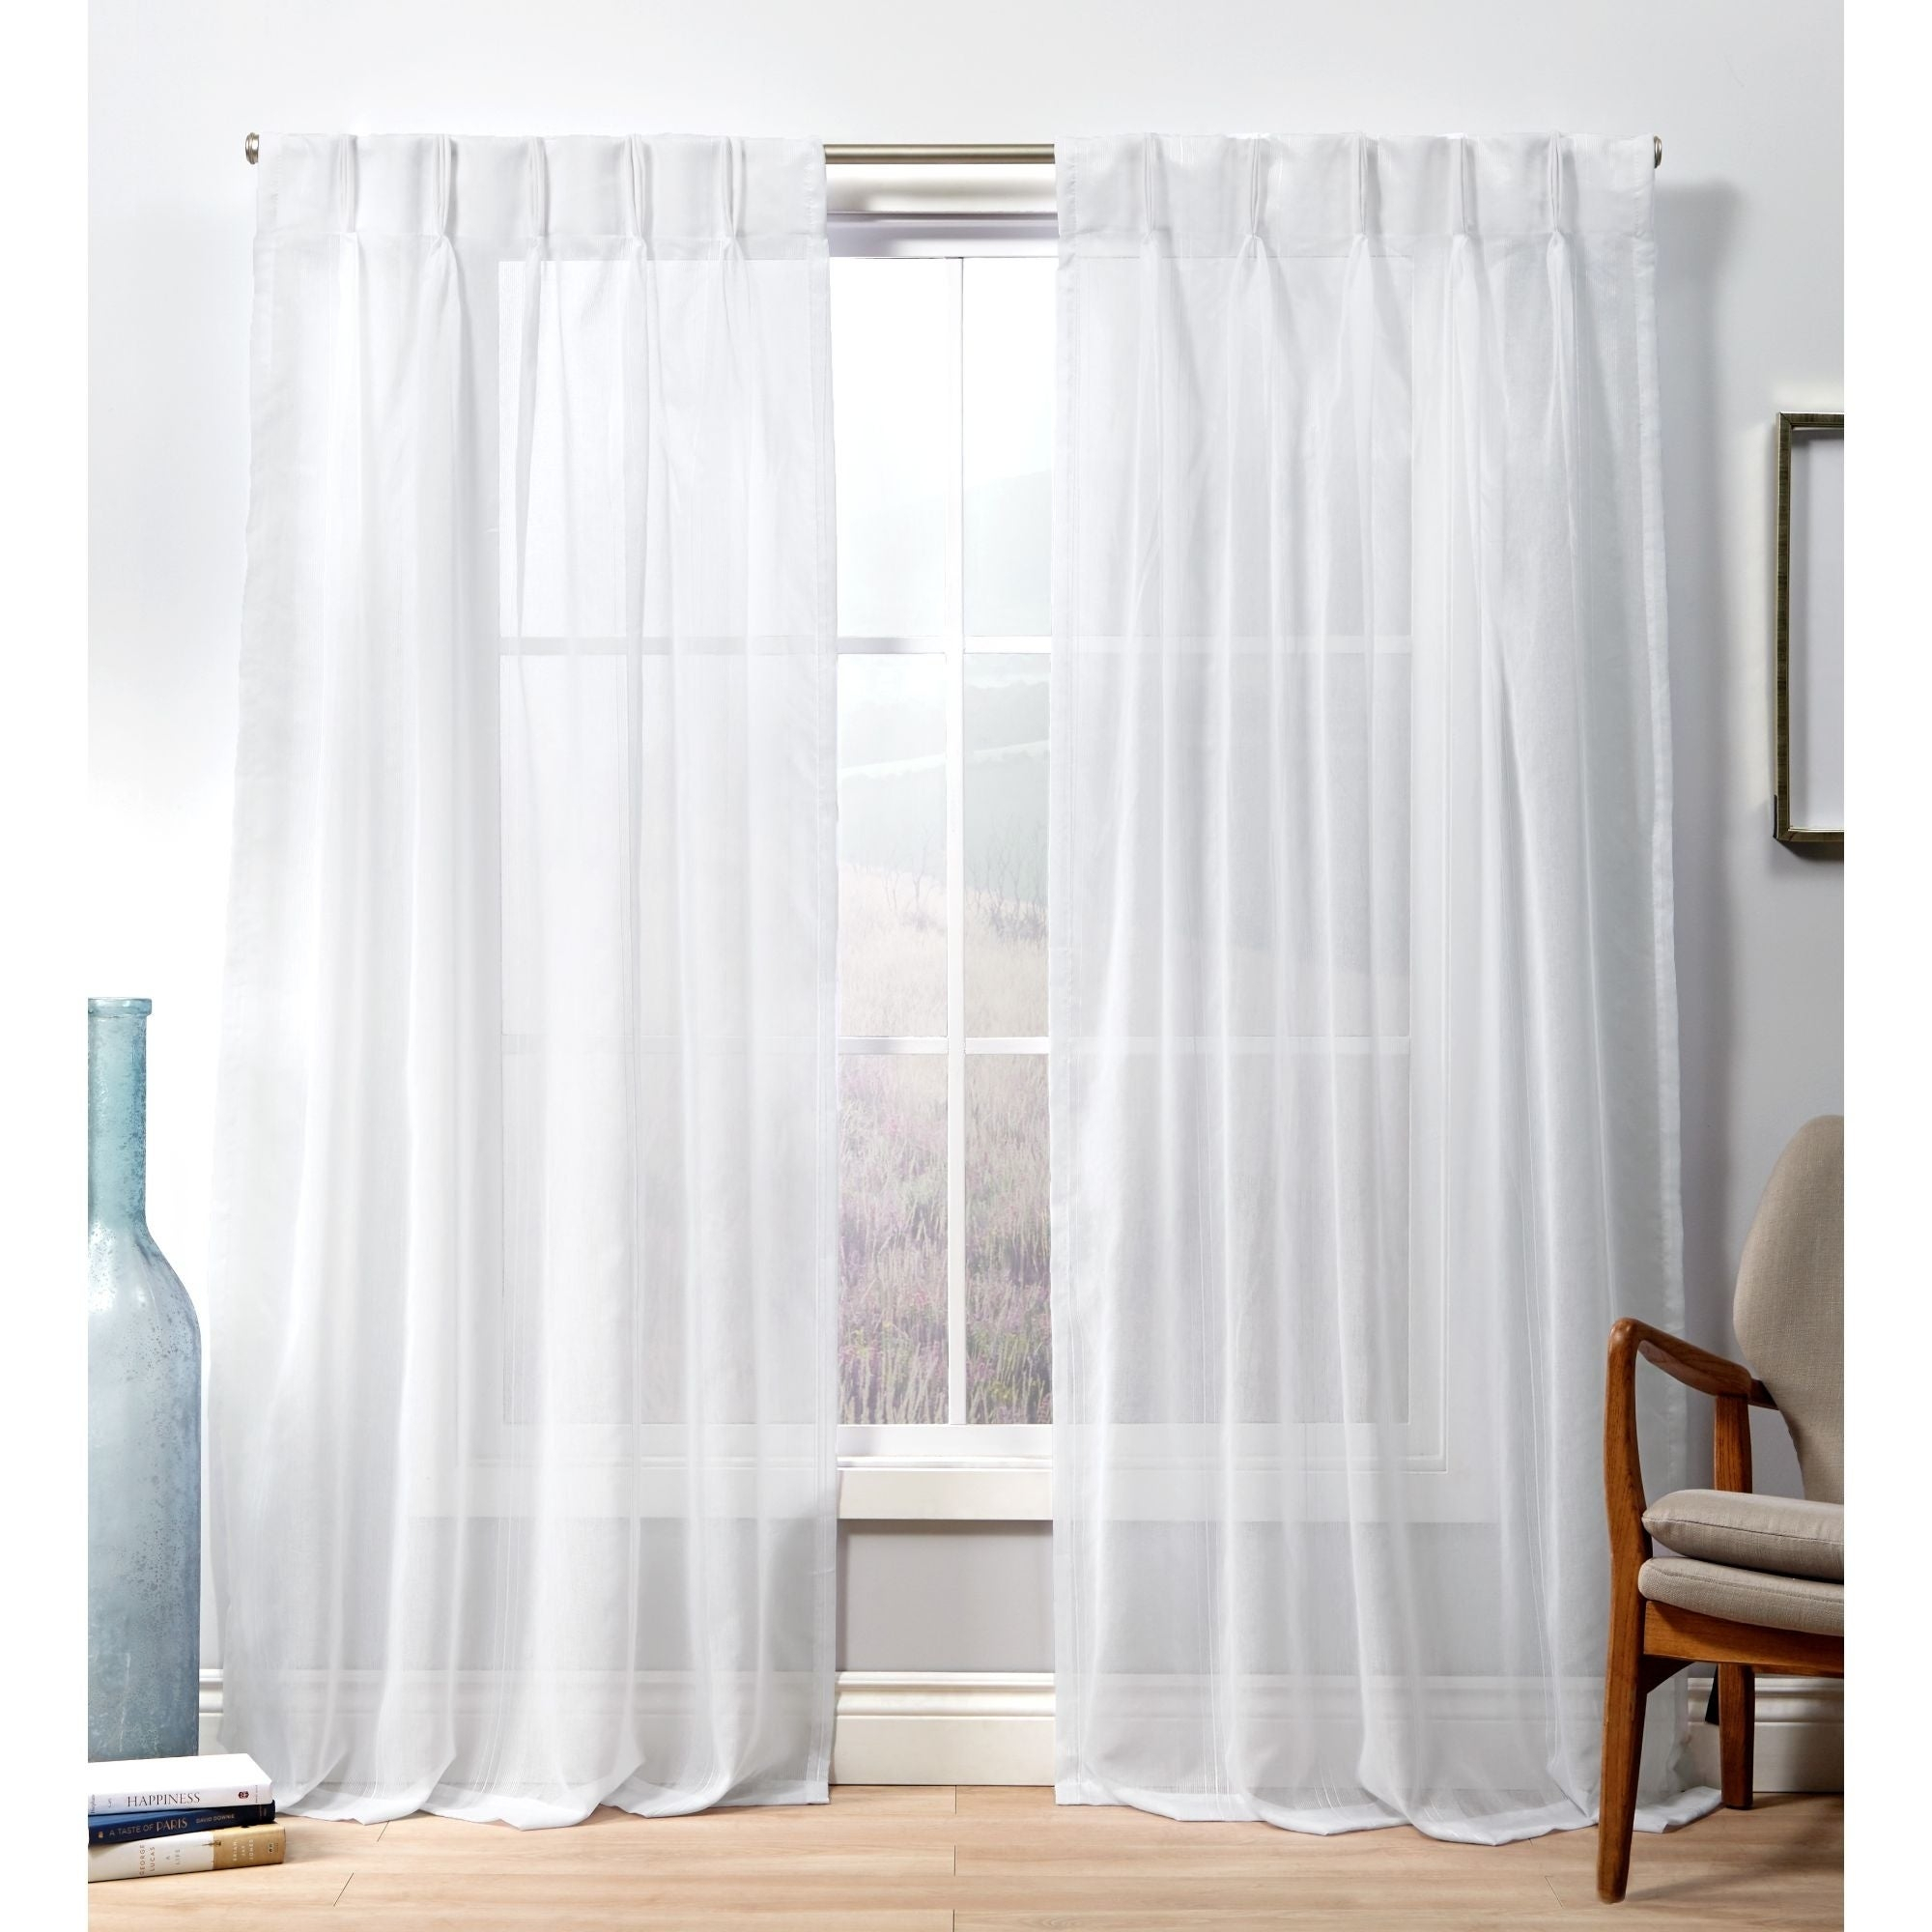 Ati Home Penny Sheer Pinch Pleat Curtain Panel Pair Intended For Double Pinch Pleat Top Curtain Panel Pairs (View 5 of 20)